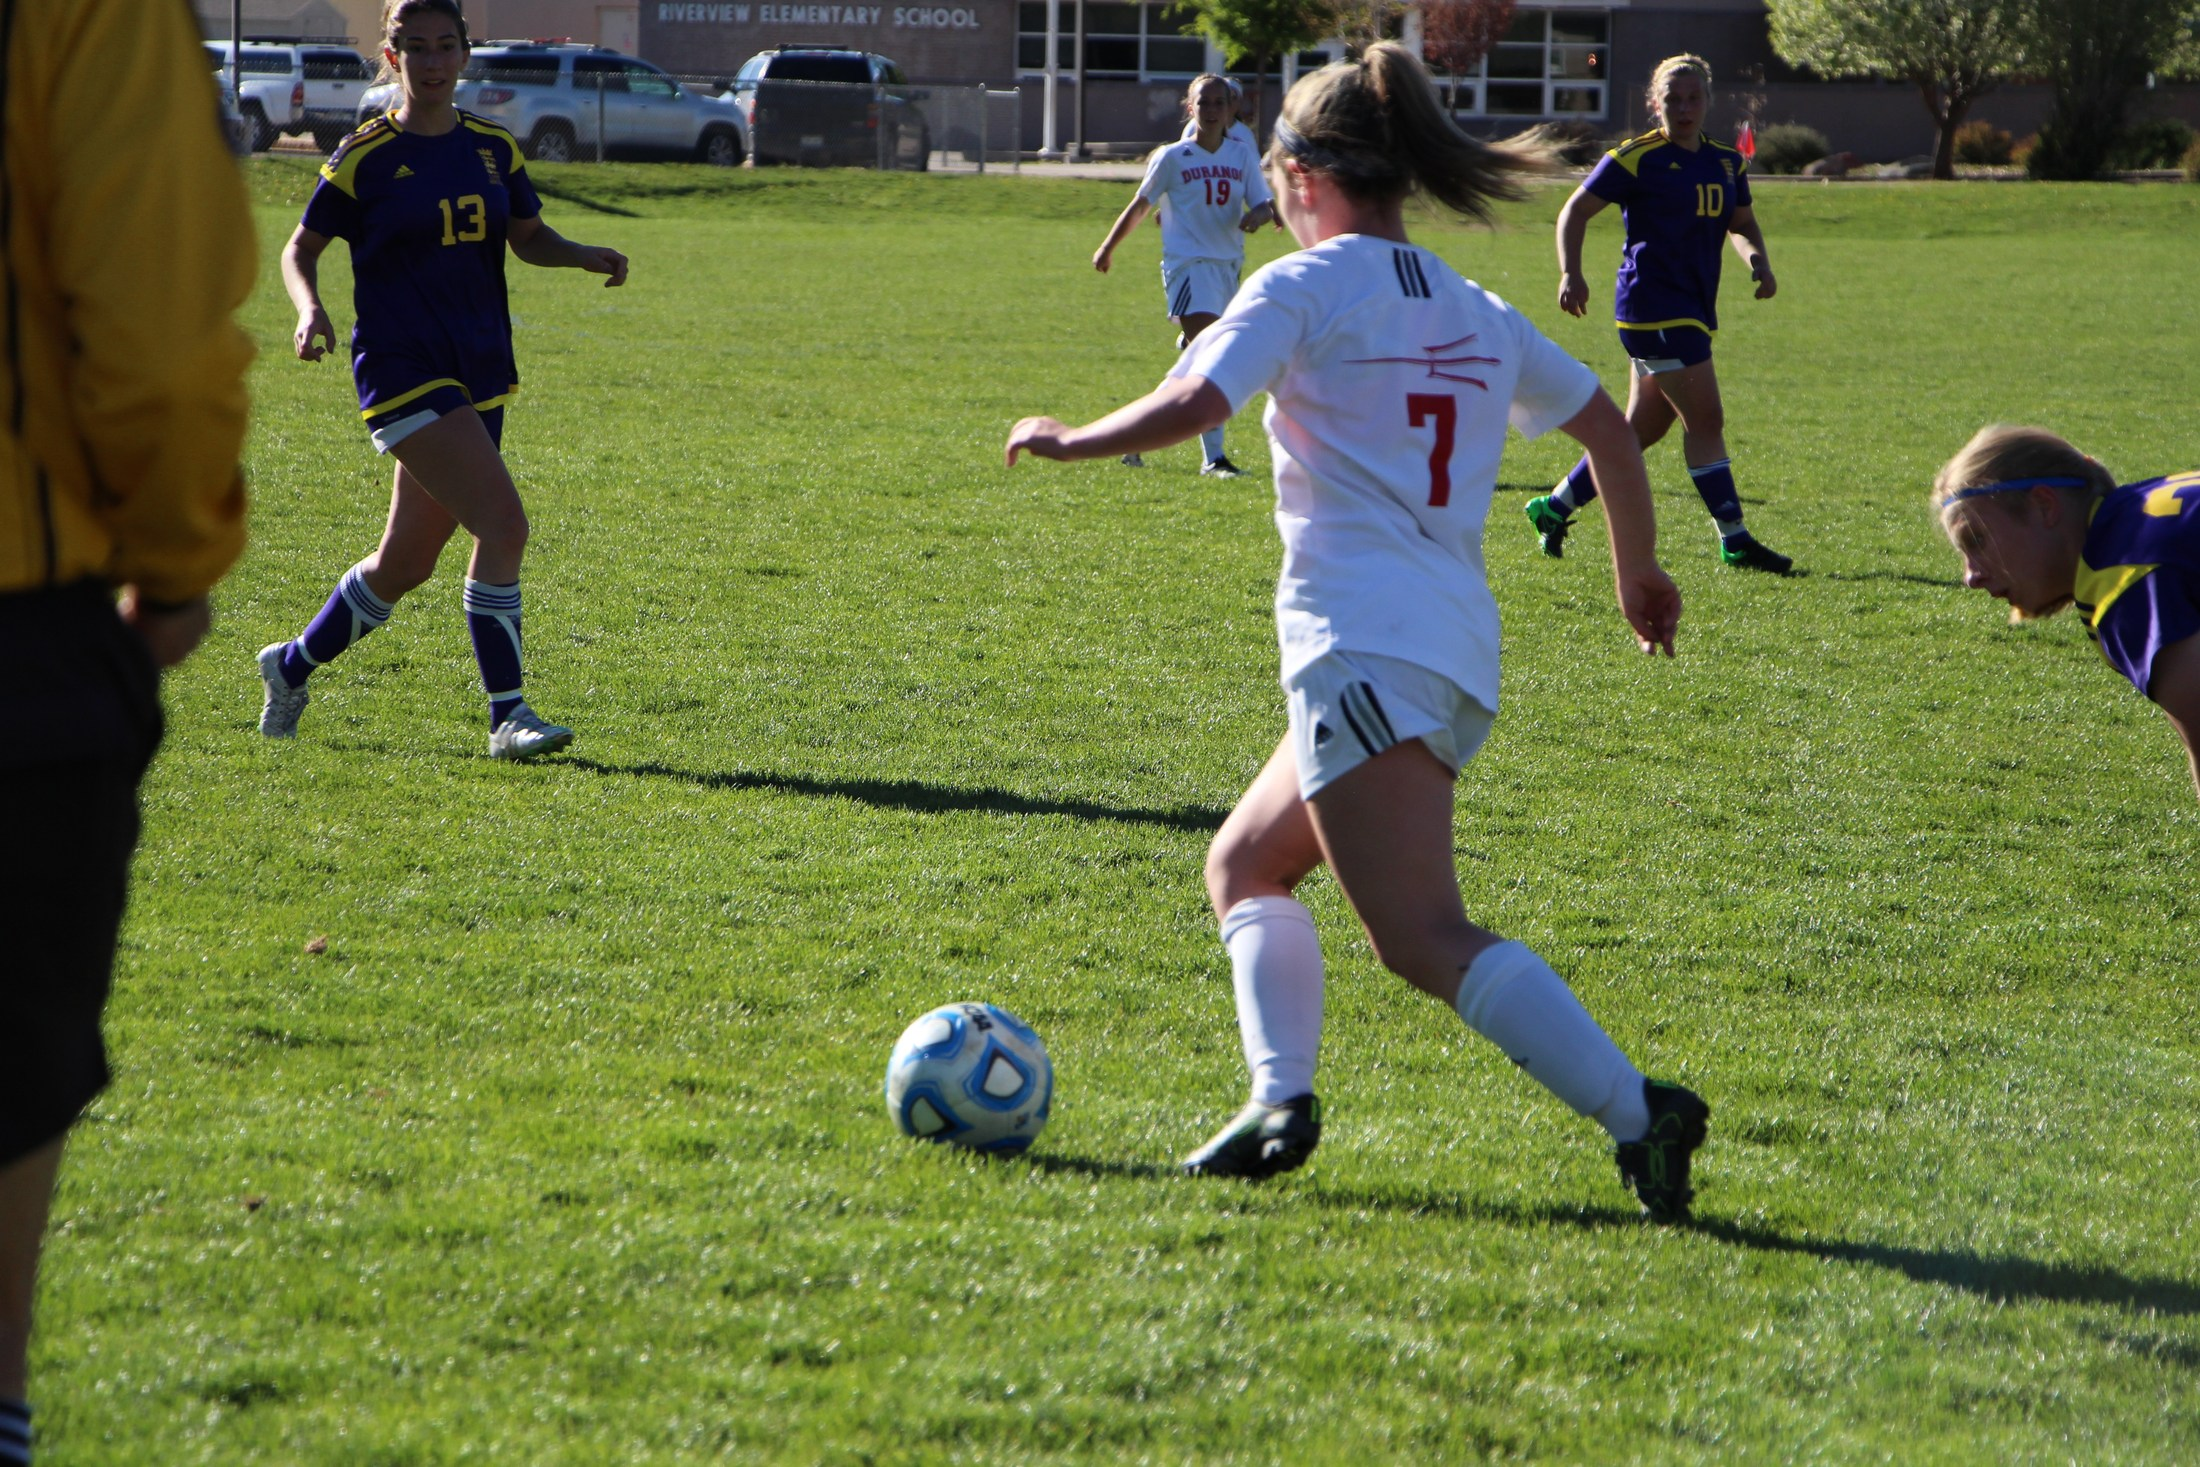 A DHS soccer striker kicks the ball up the field.